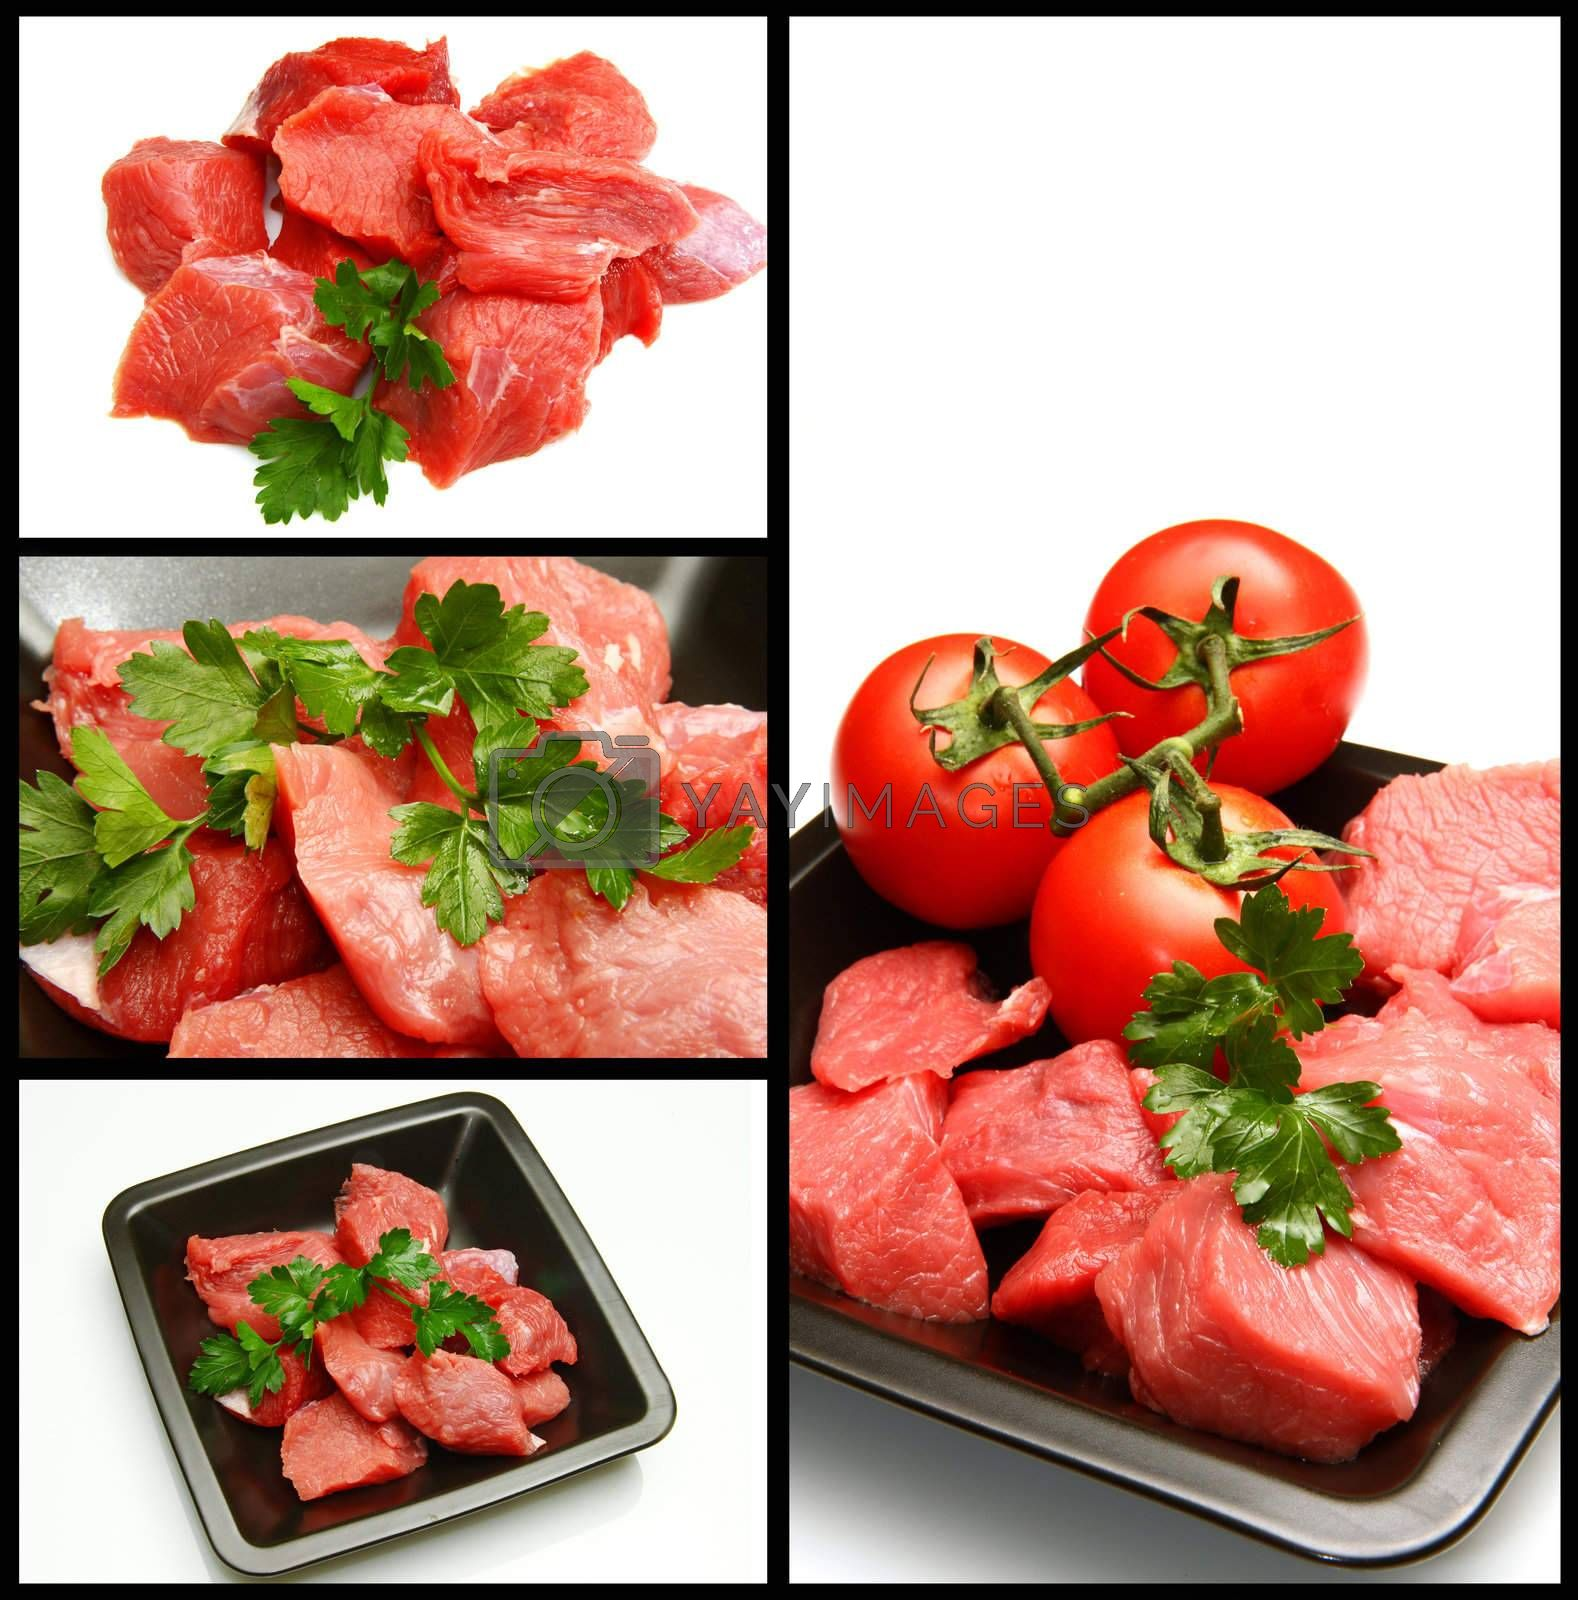 Royalty free image of red meat by lsantilli